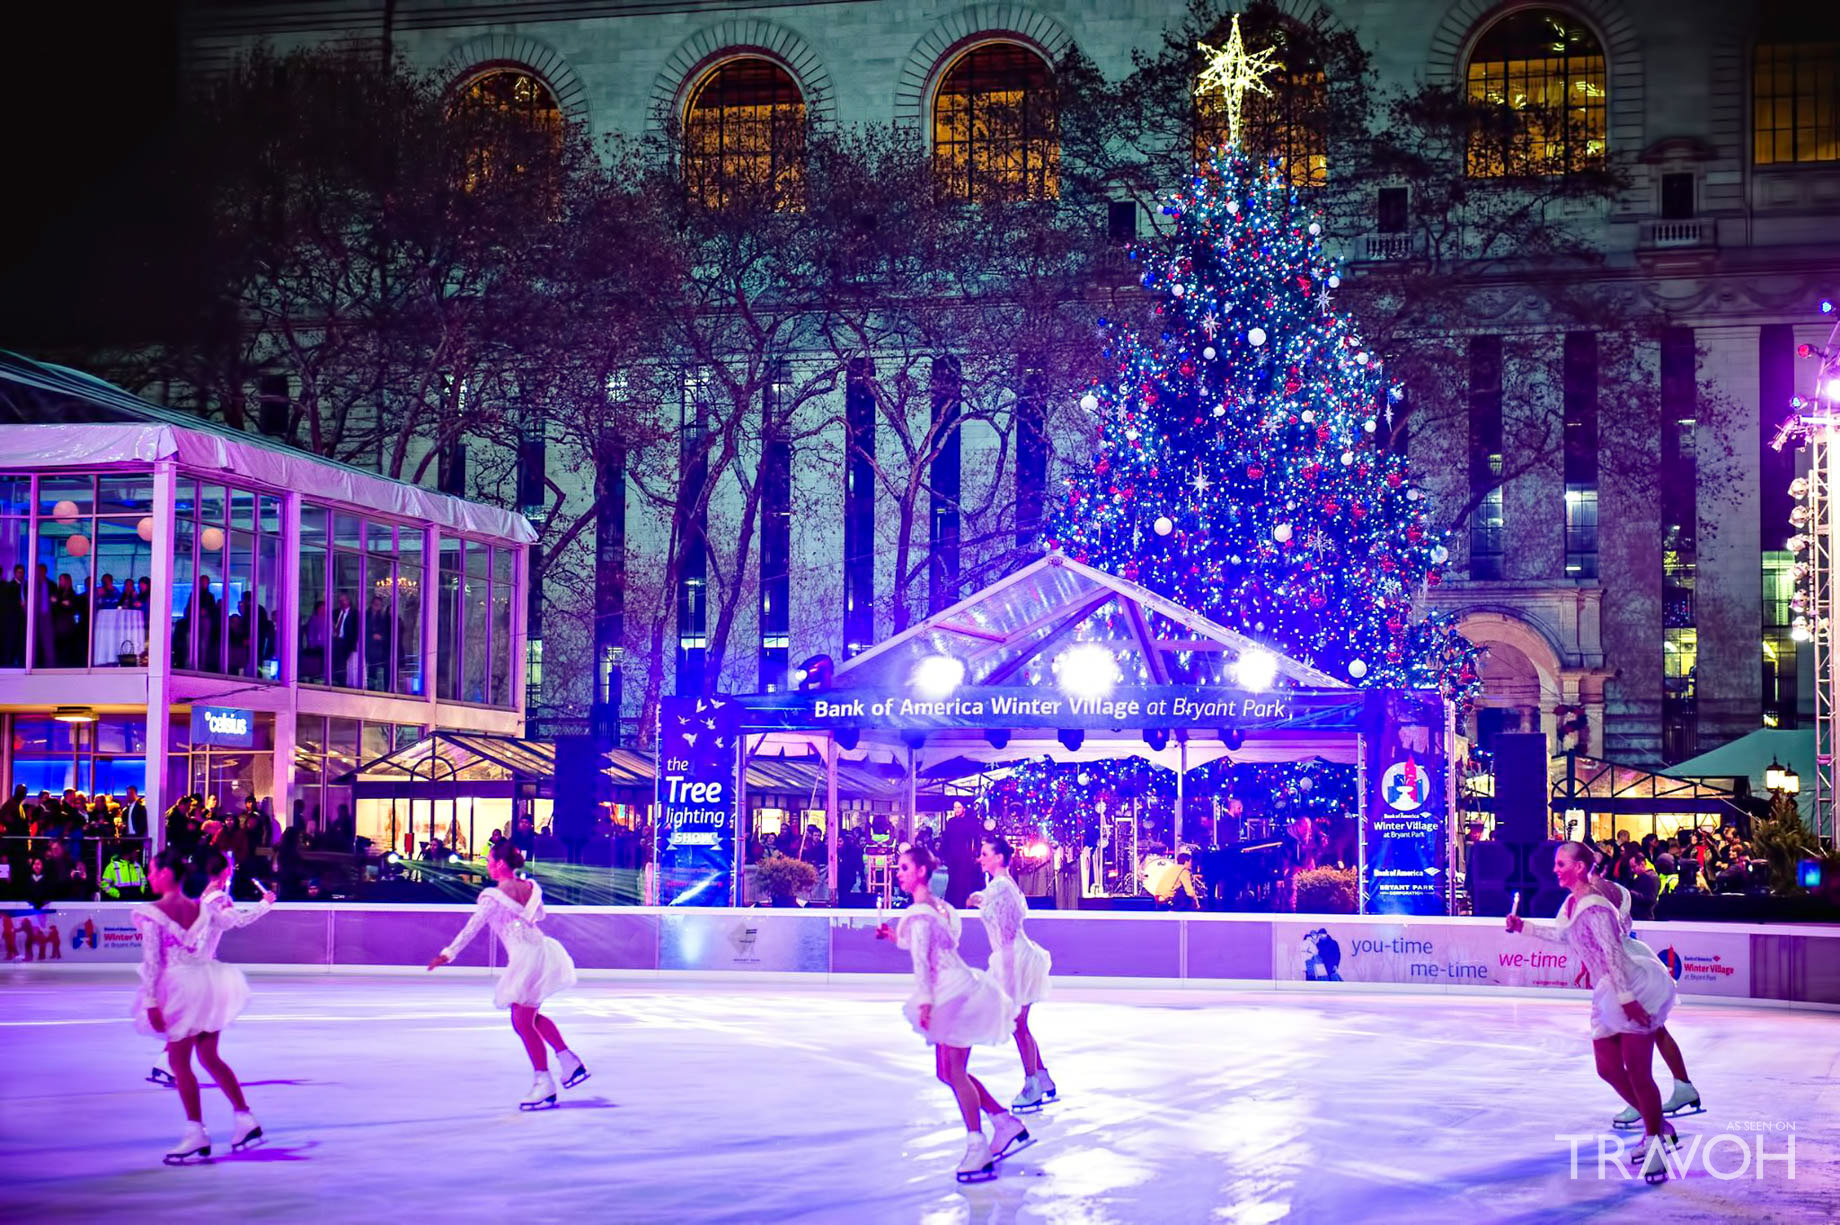 The Bryant Park Winter Village - New York, NY, USA